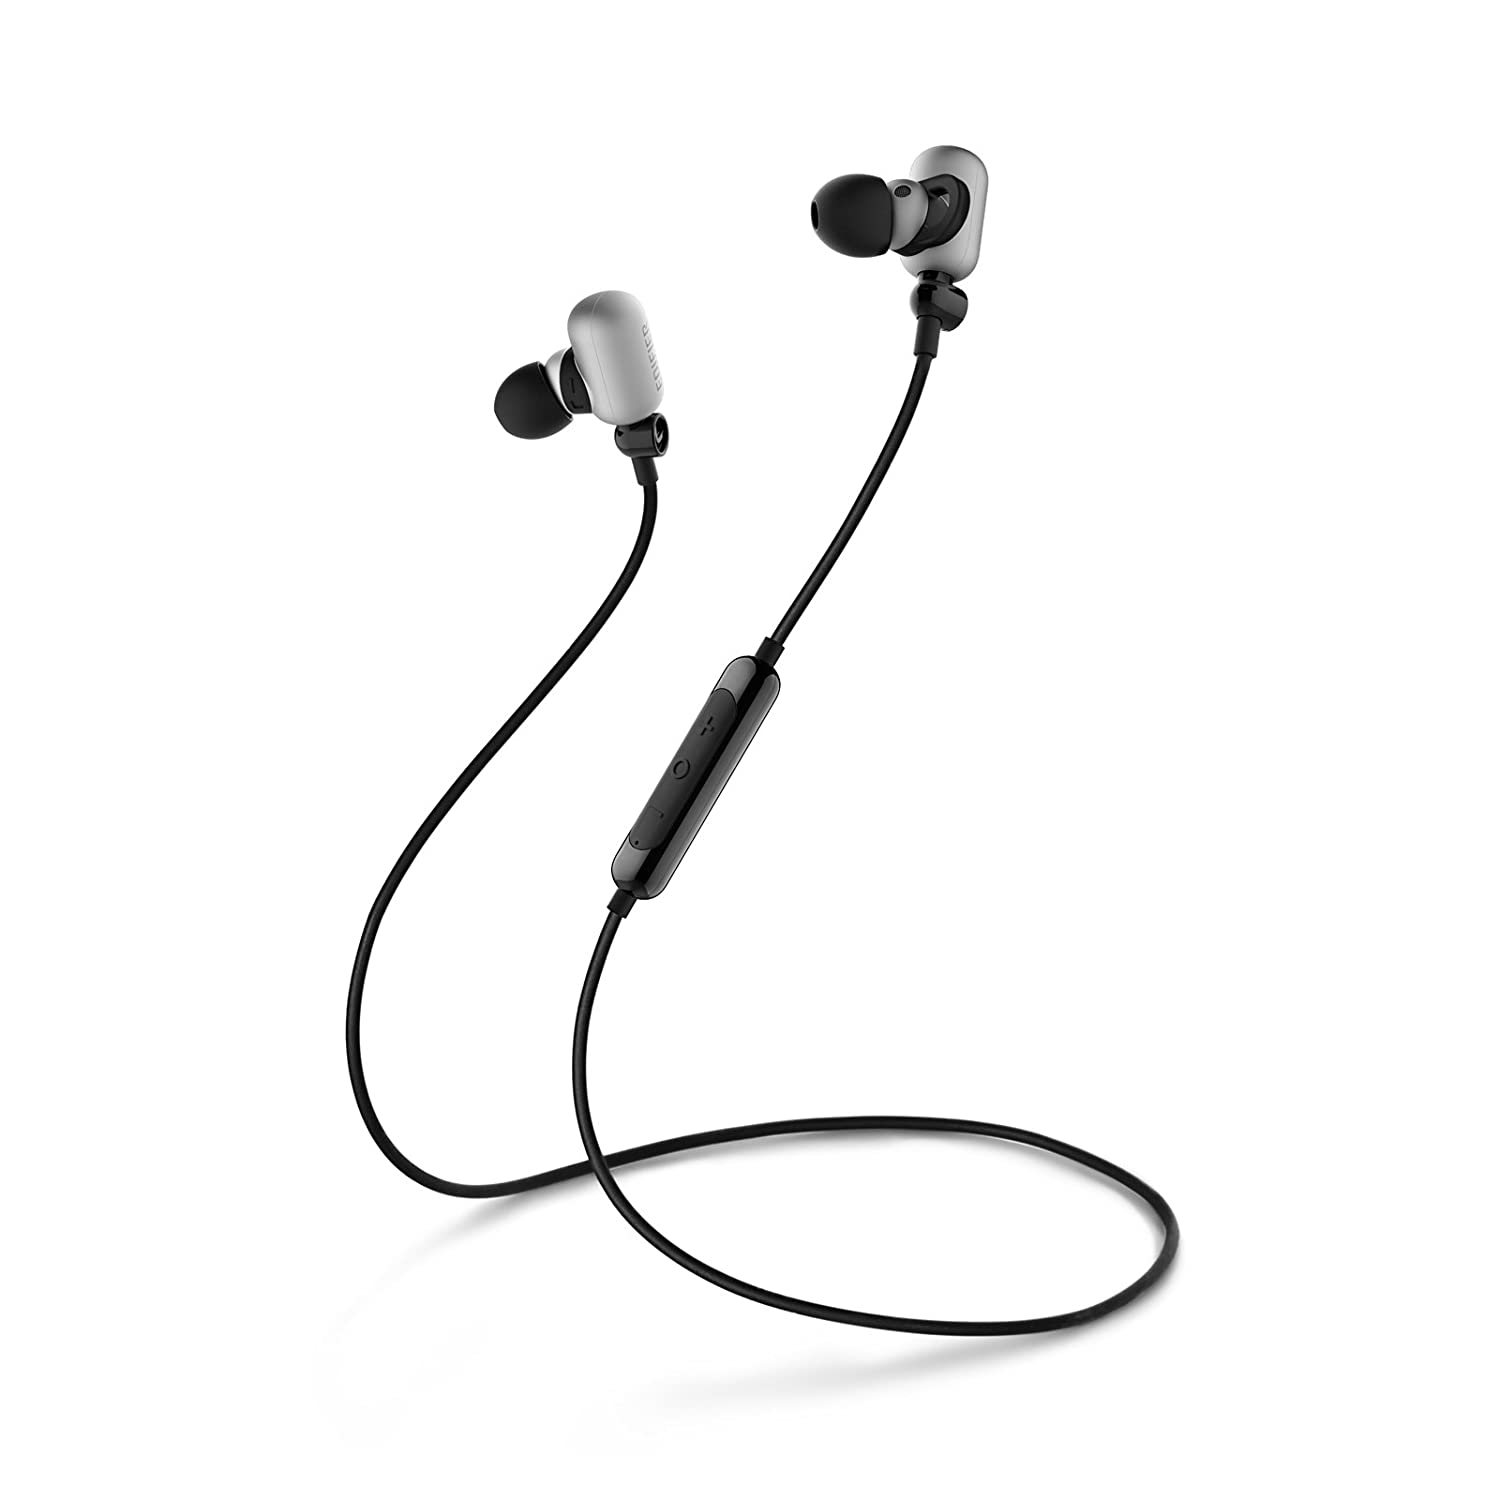 Edifier W293BT Bluetooth v4.1 aptX in-Ear Headphones Earphones IPX7 Sweatproof Waterproof Dual Battery - Silver